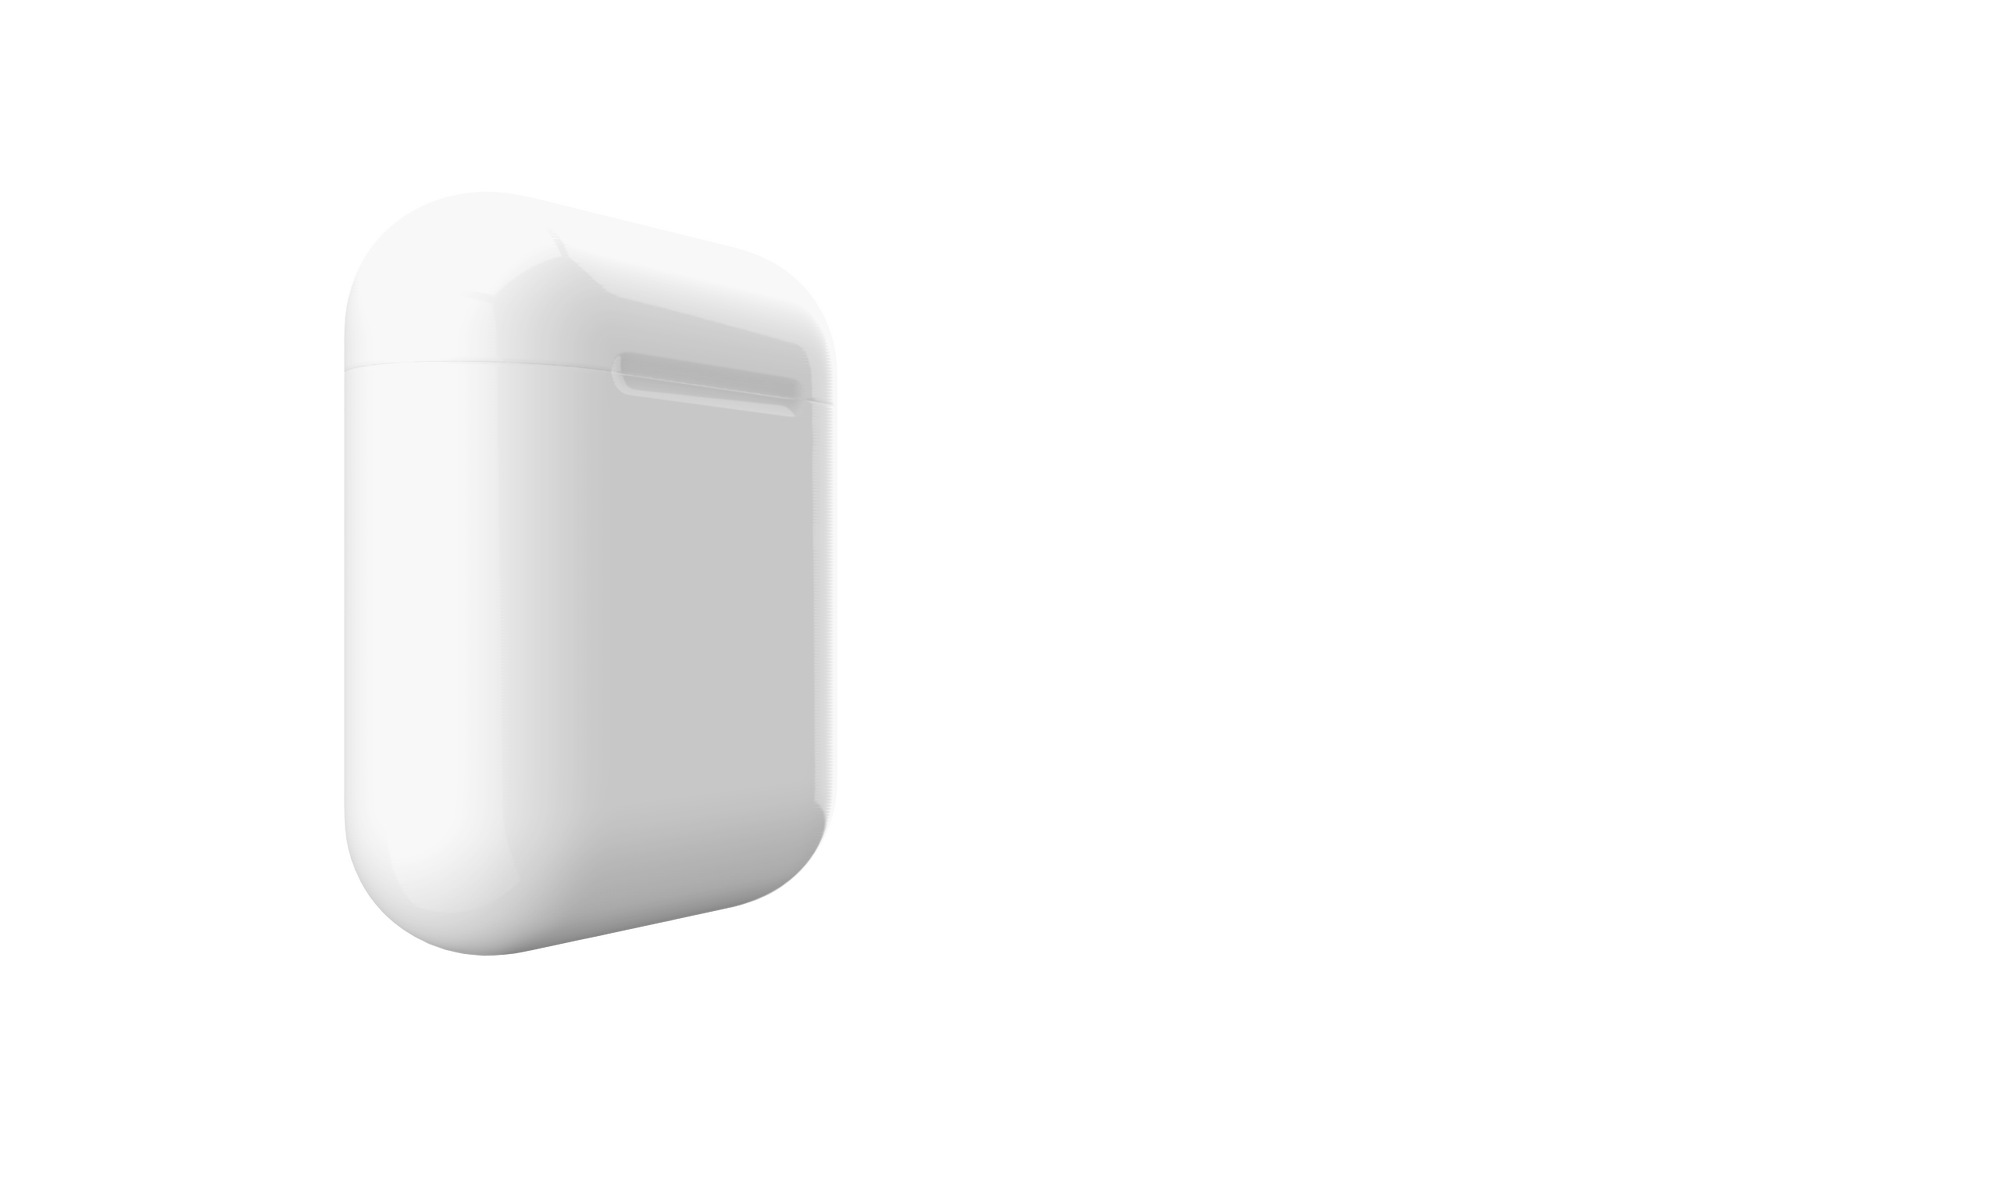 8a08a4af153 ... //dlb99j1rm9bvr.cloudfront.net/airpods-with-wireless-case/ ...